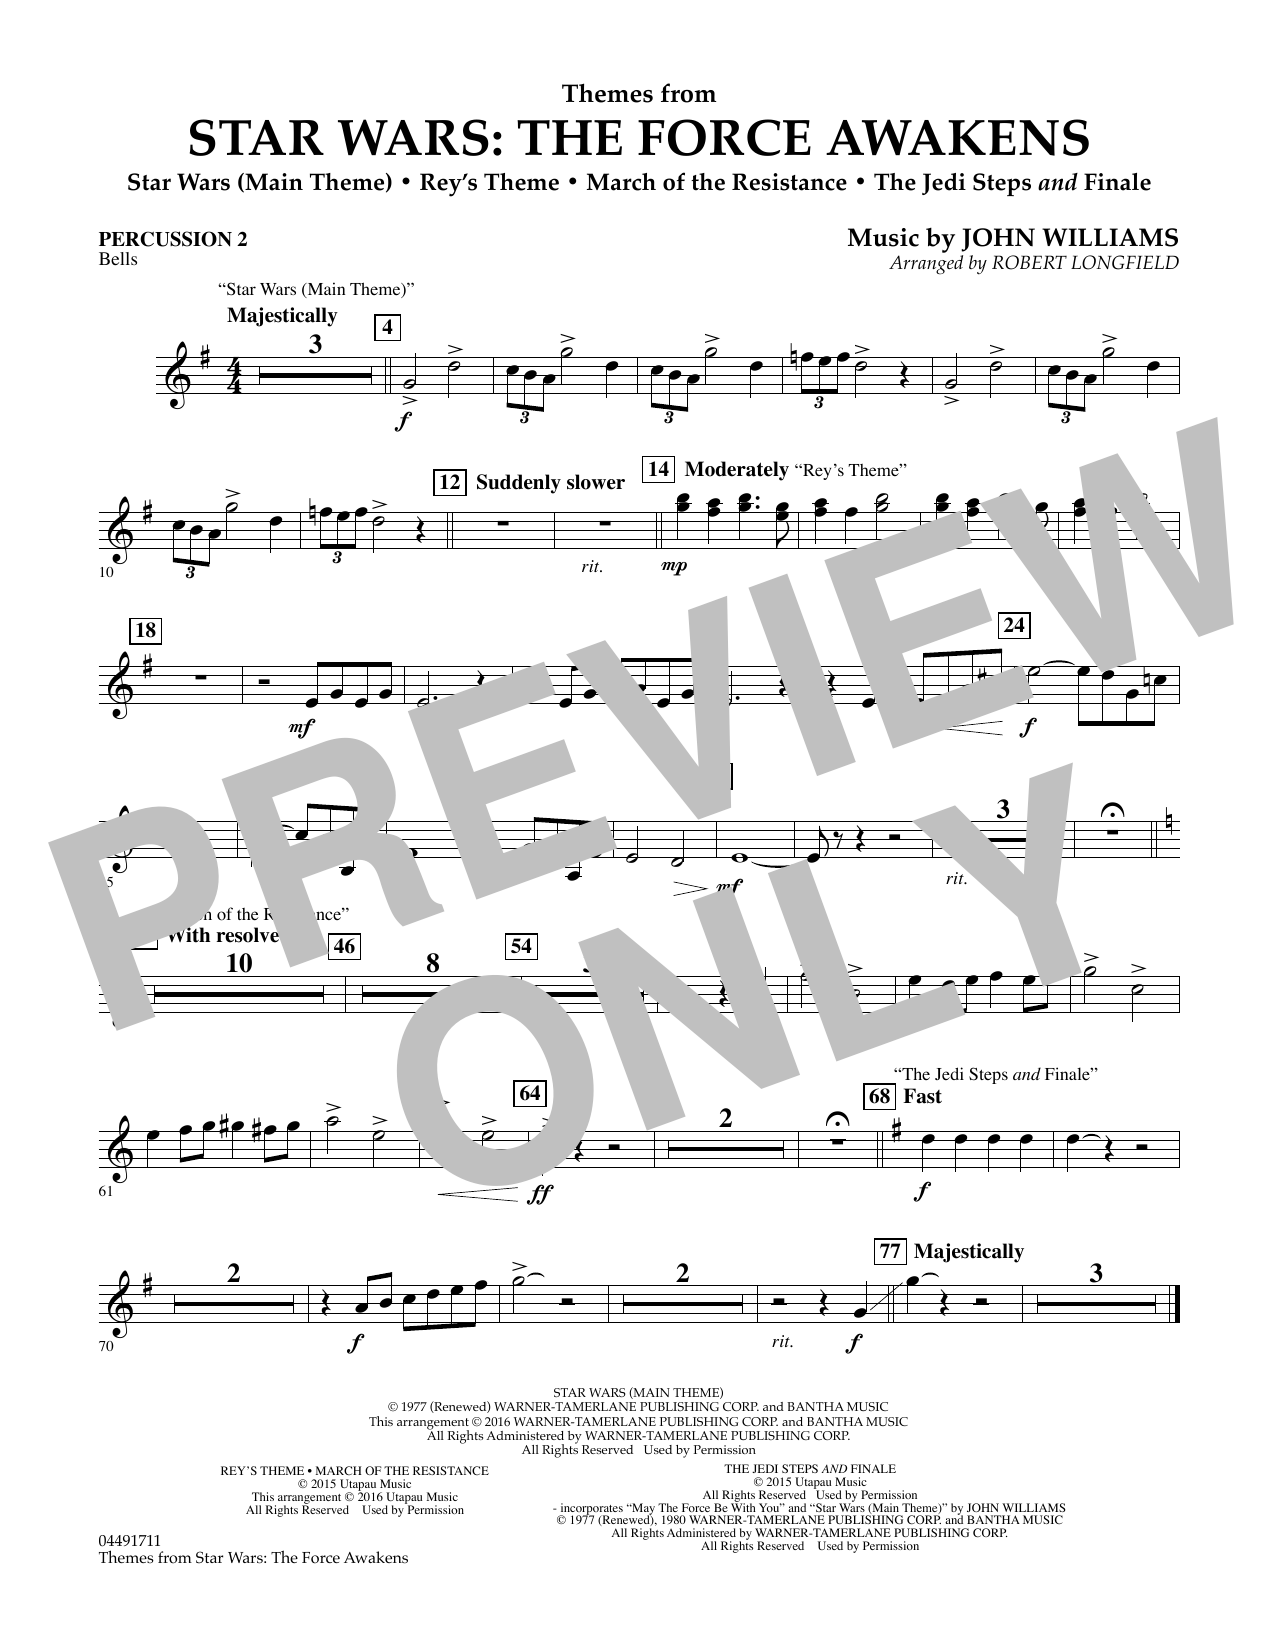 John Williams - Themes from Star Wars: The Force Awakens - Percussion 2